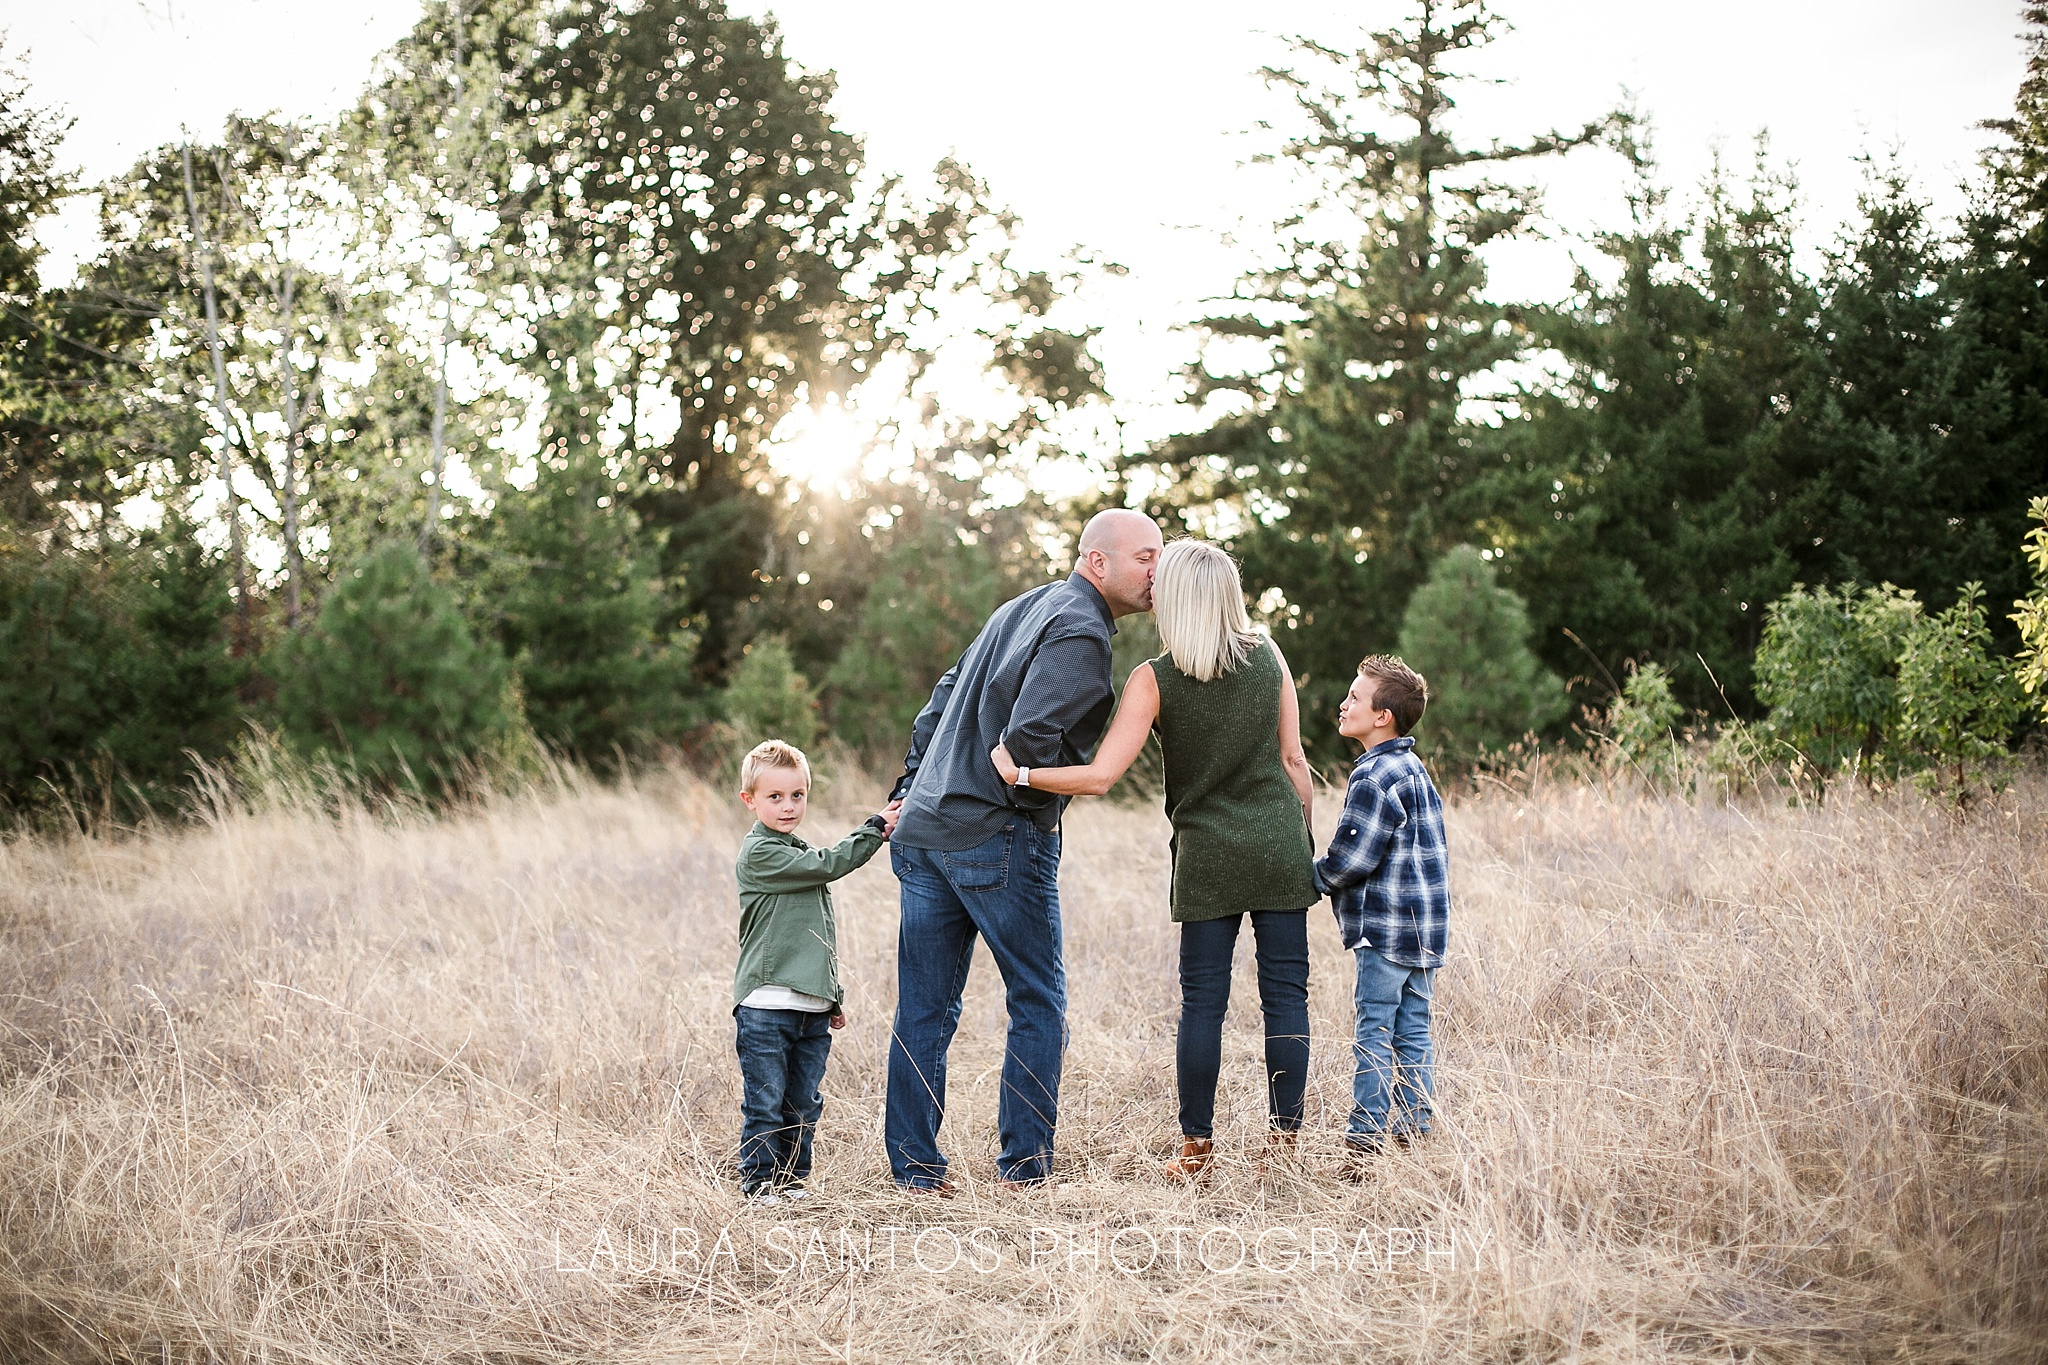 Laura Santos Photography Portland Oregon Family Photographer_0413.jpg